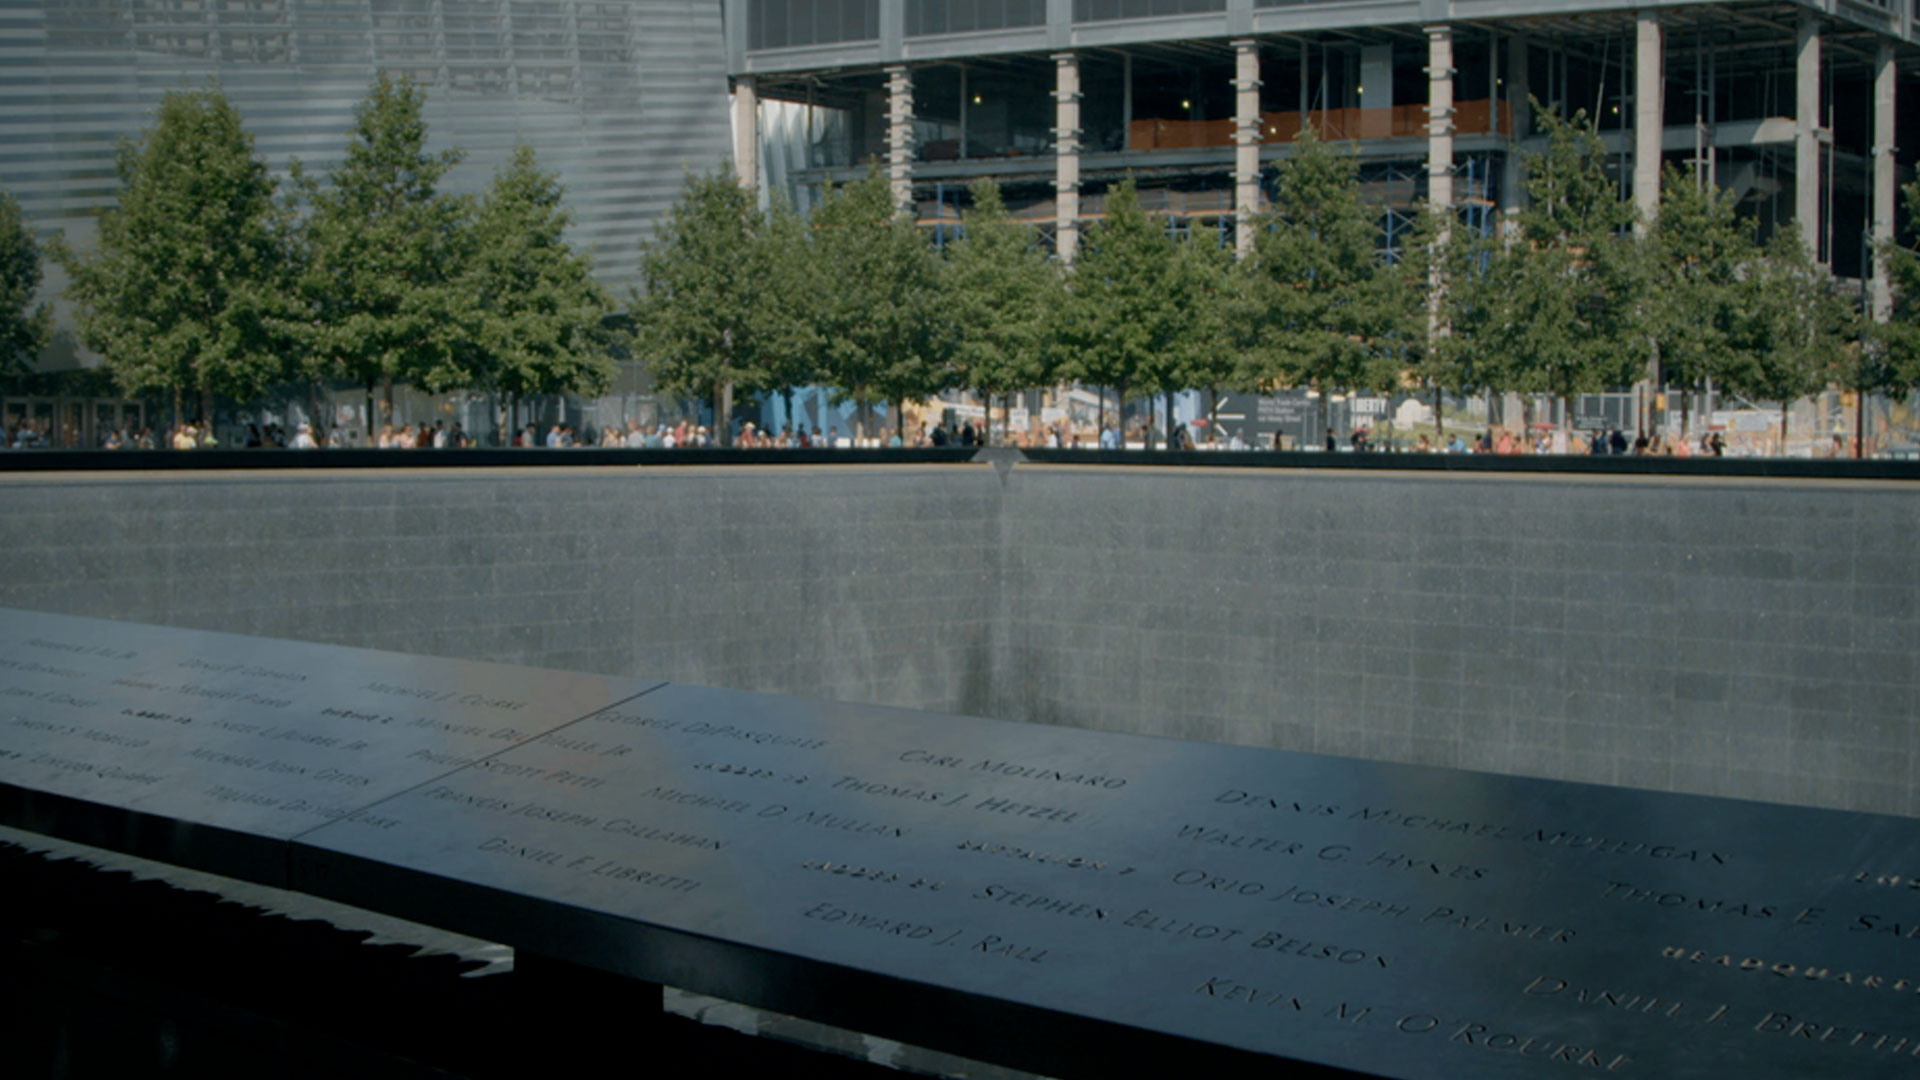 September 11th: How Did It Change Your Life?